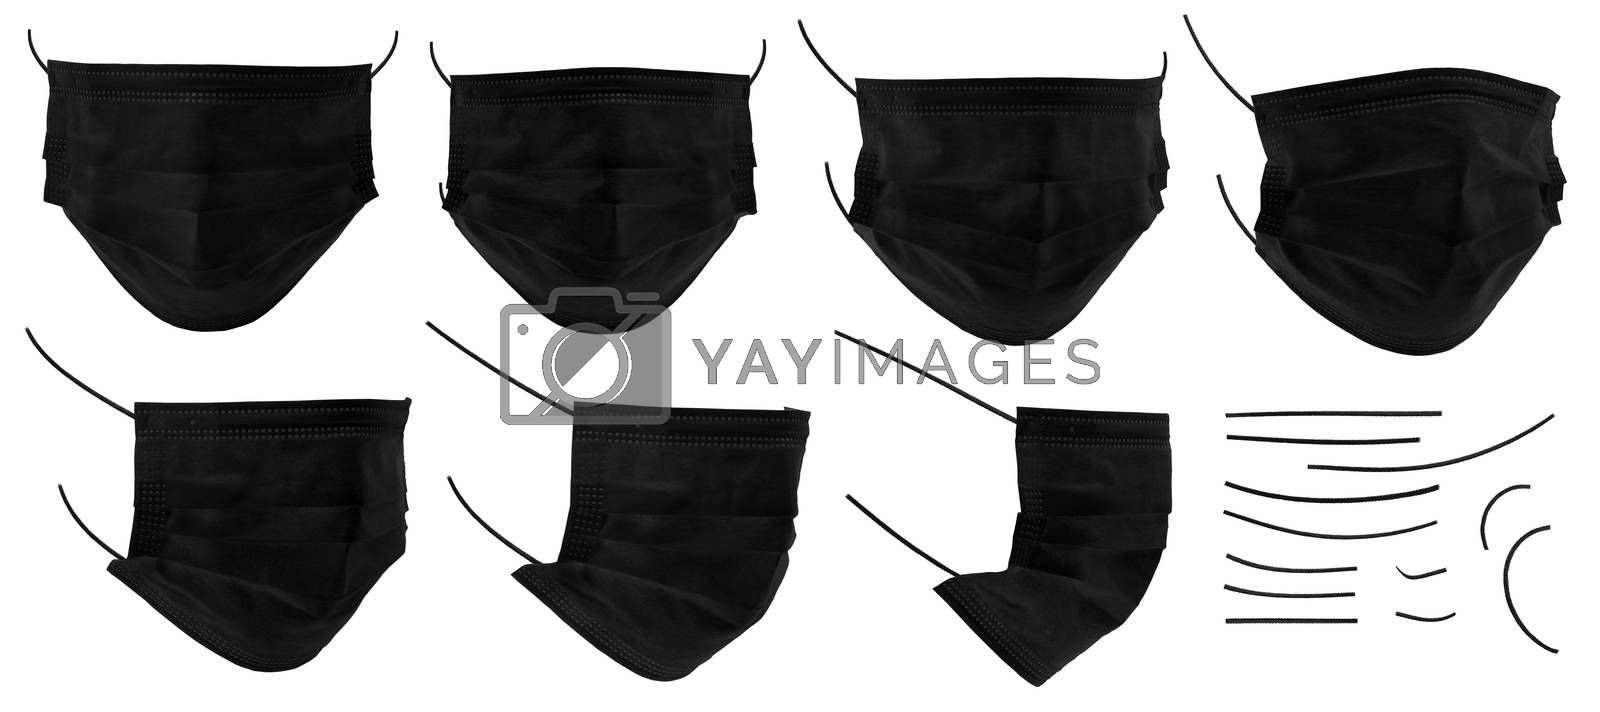 Set of medical mask or surgical ear loop mask isolated on white background with clipping path. Black color medical mask isolated. Surgical mask, template for design, high resolution, close up.